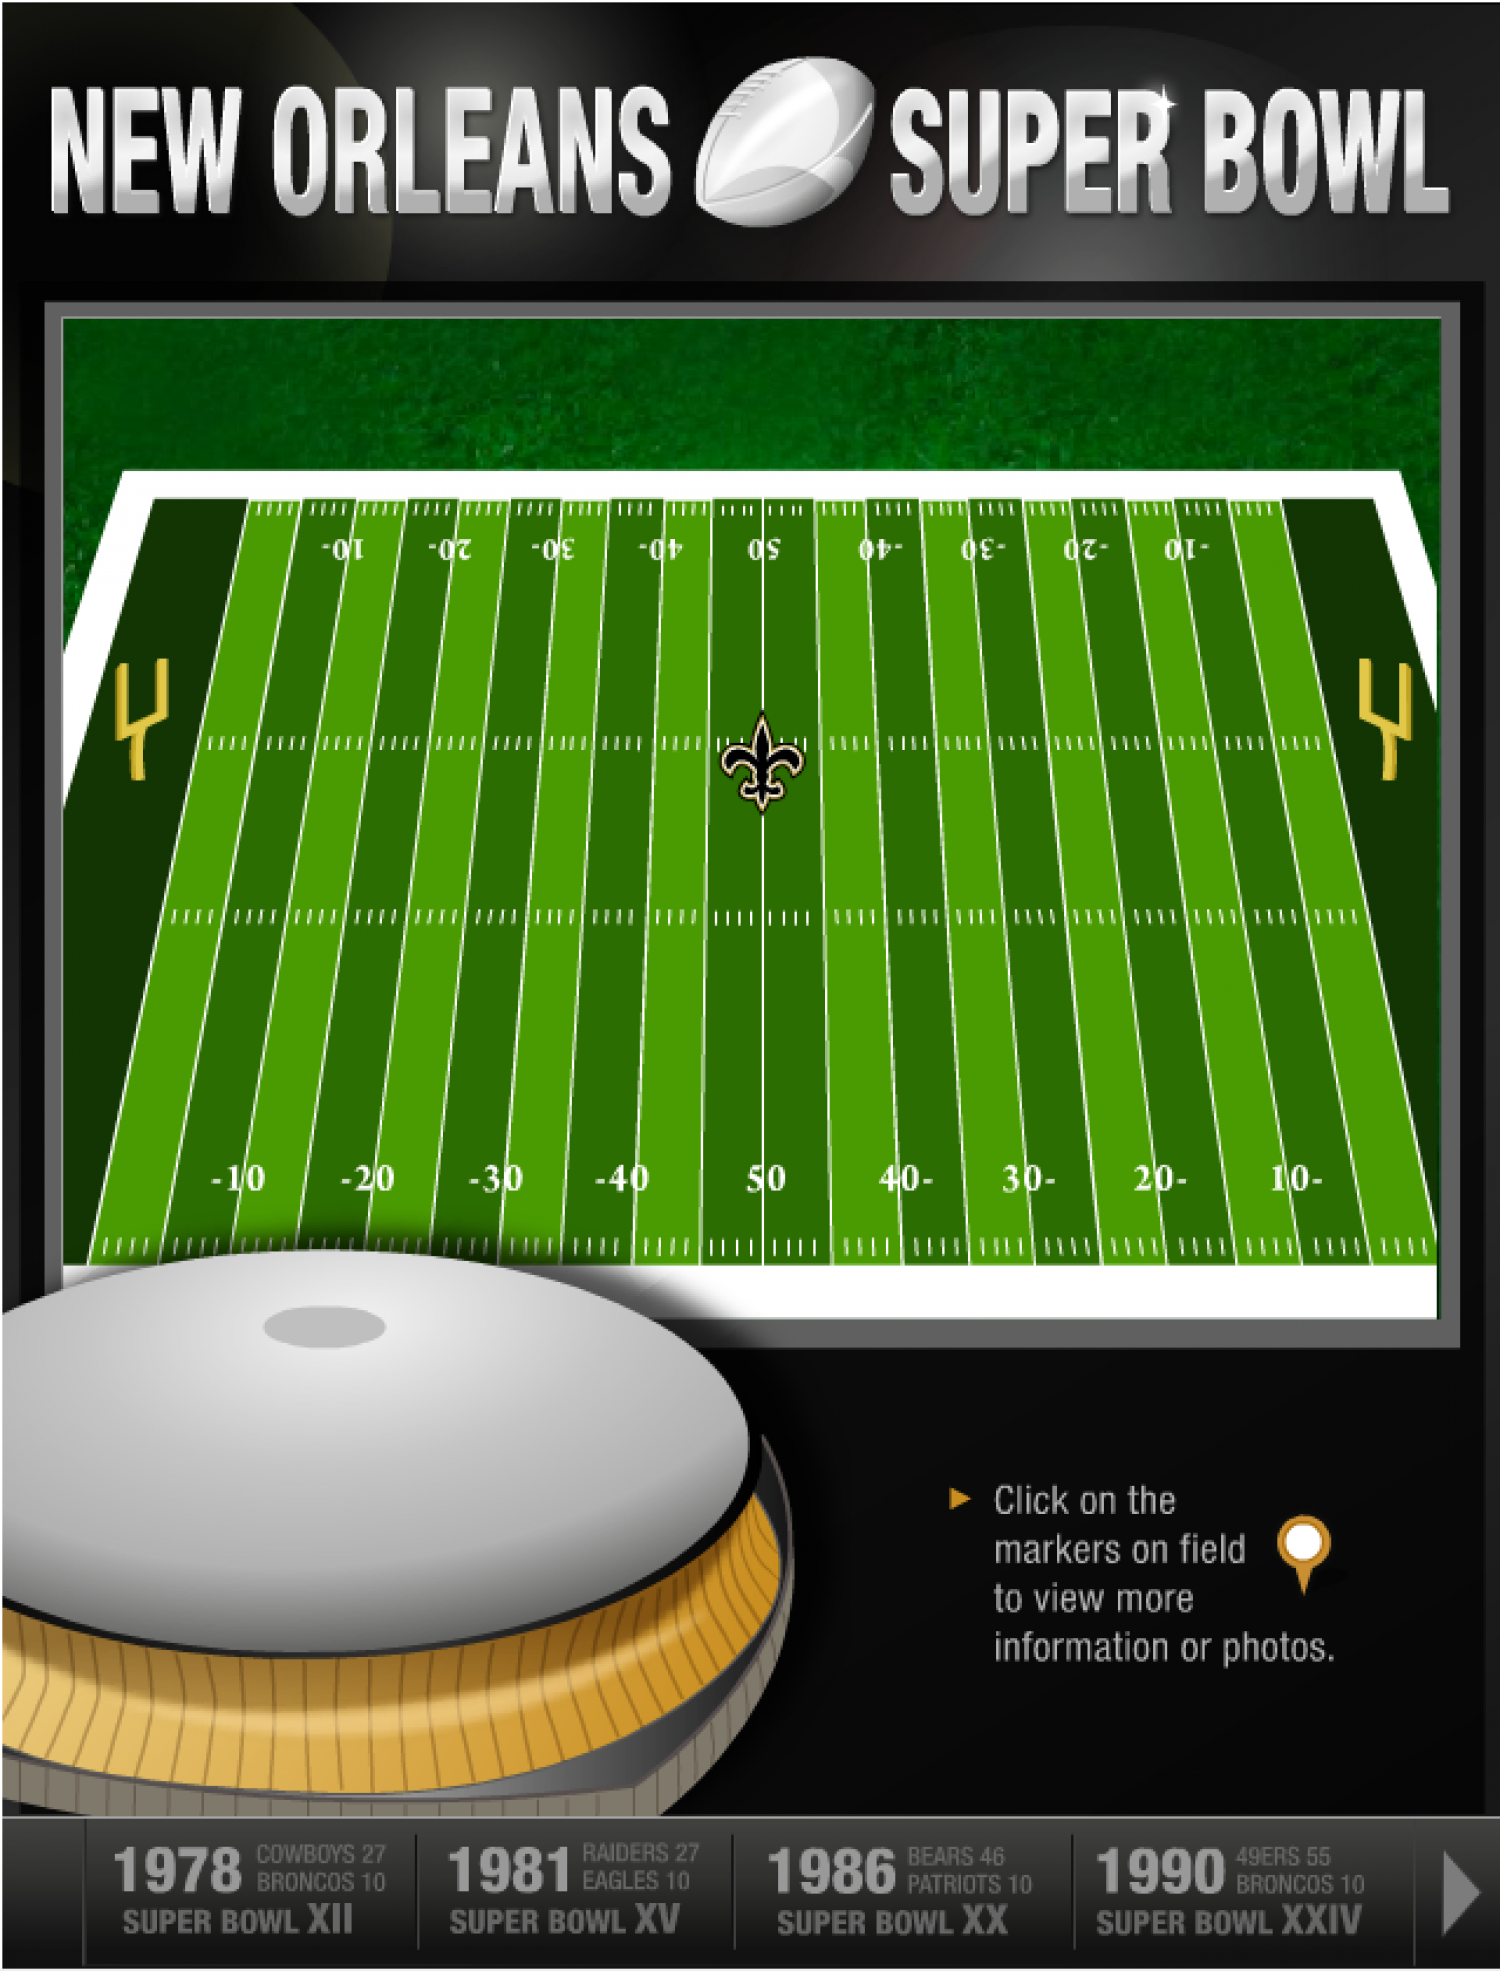 New Orleans Superdome's greatest Super Bowl moments Infographic